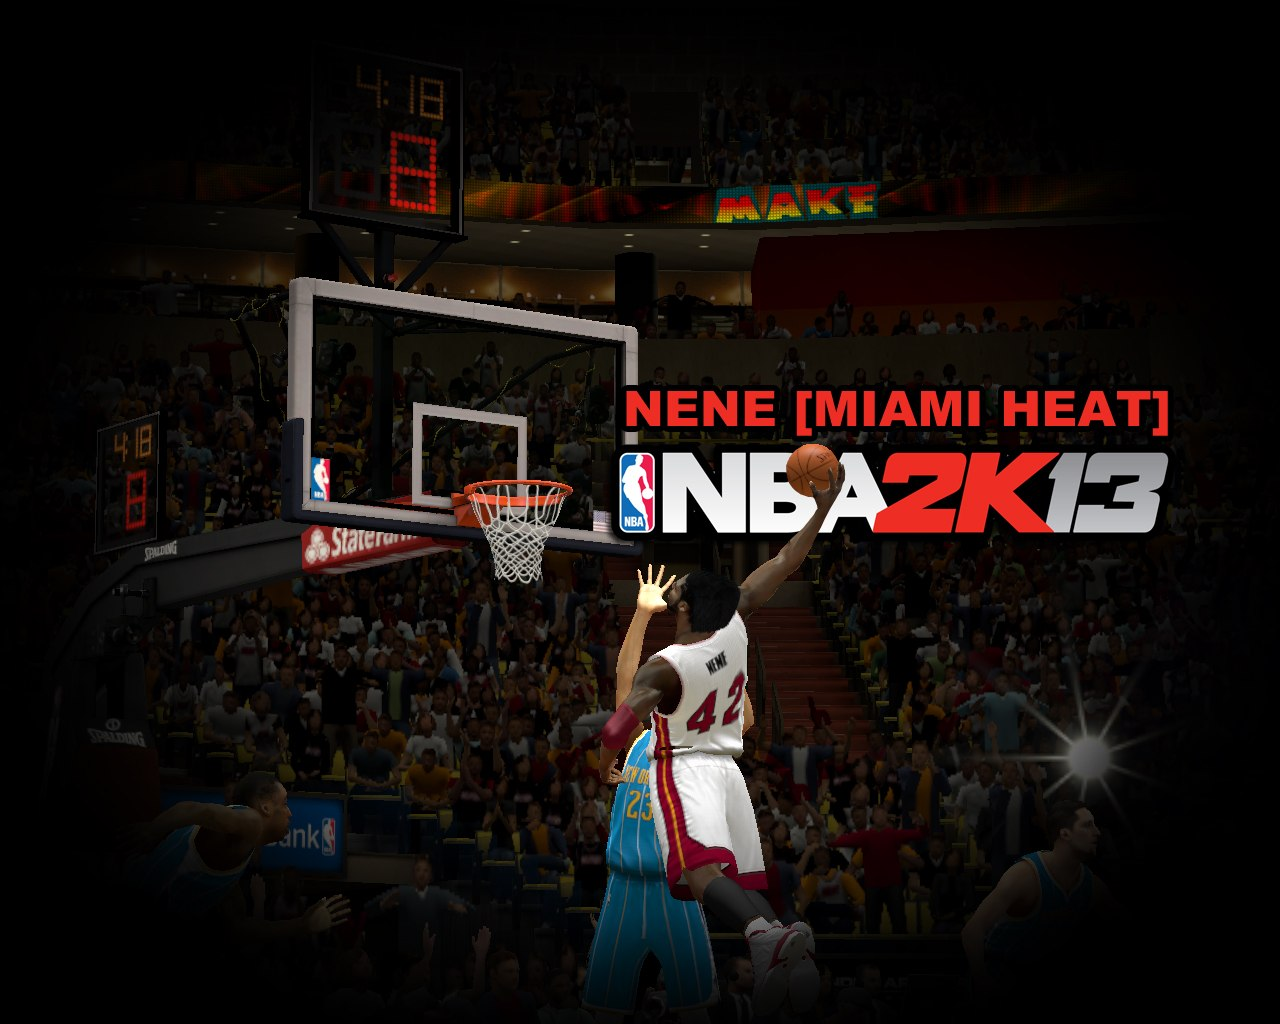 NENE from MIAMI HEAT NBA2K13